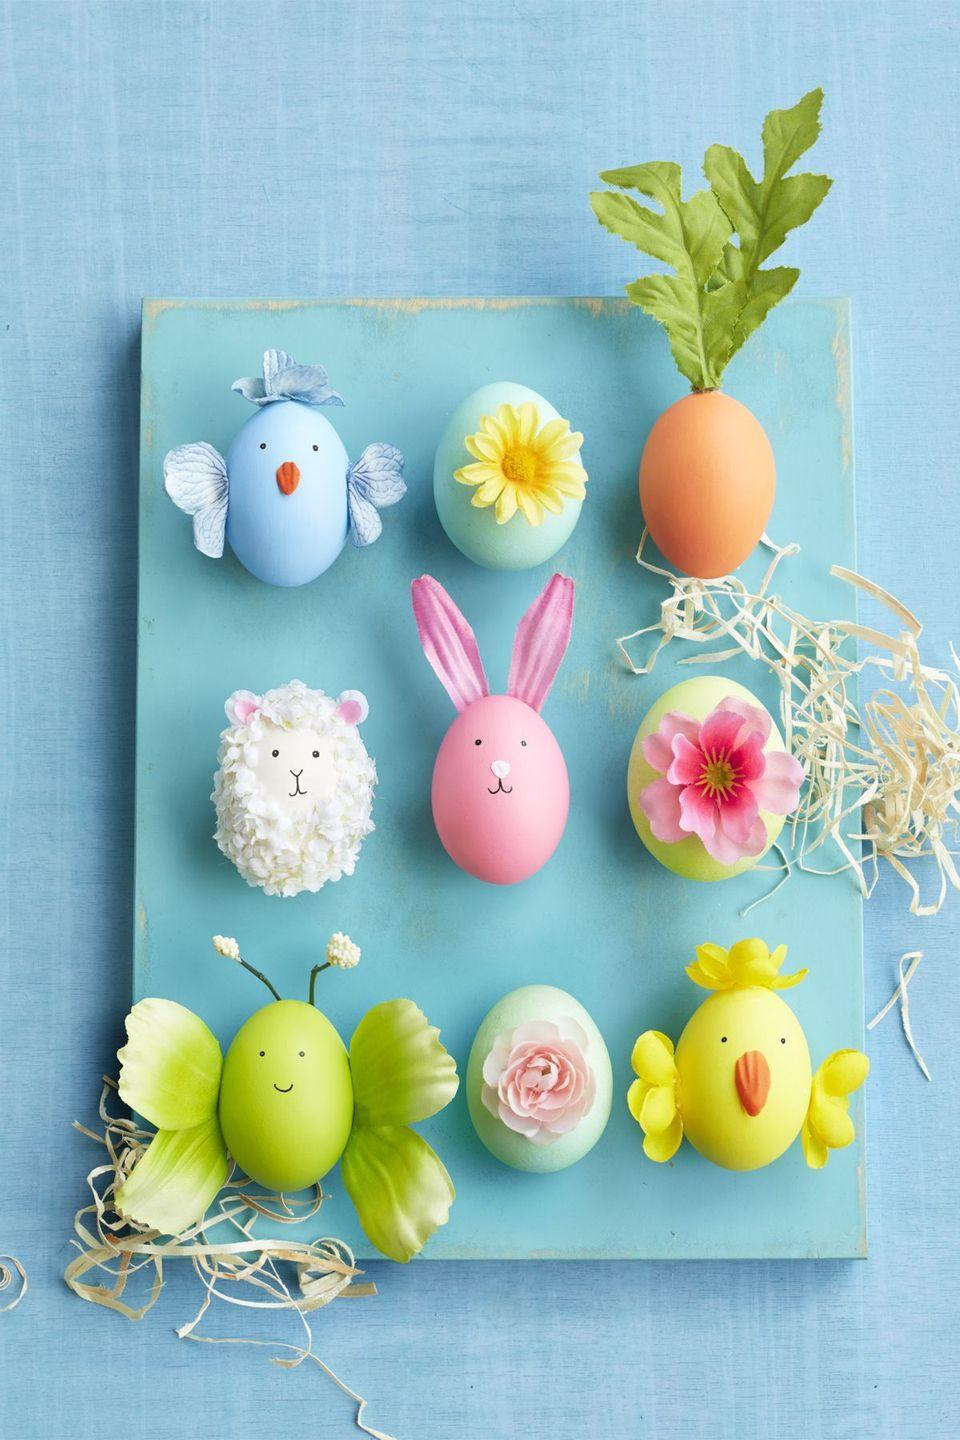 """<p>Craft your own herd of Easter characters by adhering faux flower petals, buds, and leaves to colored eggs. (Paint and decorate <a href=""""http://ceramiceggs.com/"""" rel=""""nofollow noopener"""" target=""""_blank"""" data-ylk=""""slk:ceramic eggs"""" class=""""link rapid-noclick-resp"""">ceramic eggs</a> and you can display this craft every spring!)</p><p><strong><em><a href=""""https://www.womansday.com/home/crafts-projects/how-to/a58121/how-to-make-lamb-egg/"""" rel=""""nofollow noopener"""" target=""""_blank"""" data-ylk=""""slk:Get the Easter Characters tutorial."""" class=""""link rapid-noclick-resp"""">Get the Easter Characters tutorial.</a></em></strong></p><p><strong><a class=""""link rapid-noclick-resp"""" href=""""https://www.amazon.com/Ceramic-Chicken-Nesting-Eggs-Brown/dp/B07662TMJD/?tag=syn-yahoo-20&ascsubtag=%5Bartid%7C10070.g.1751%5Bsrc%7Cyahoo-us"""" rel=""""nofollow noopener"""" target=""""_blank"""" data-ylk=""""slk:SHOP CERAMIC EGGS"""">SHOP CERAMIC EGGS</a></strong><br><br><strong>__________________________________________________________</strong><br><em><br></em></p><p><em>Want more Woman's Day? </em><a href=""""https://subscribe.hearstmags.com/subscribe/womansday/253396?source=wdy_edit_article"""" rel=""""nofollow noopener"""" target=""""_blank"""" data-ylk=""""slk:Subscribe to Woman's Day"""" class=""""link rapid-noclick-resp""""><em>Subscribe to Woman's Day</em></a><em> today and get </em><strong><em>73% off your first 12 issues</em></strong><em>. And while you're at it, </em><a href=""""https://link.womansday.com/join/3o9/wdy-newsletter"""" rel=""""nofollow noopener"""" target=""""_blank"""" data-ylk=""""slk:sign up for our FREE newsletter"""" class=""""link rapid-noclick-resp""""><em>sign up for our FREE newsletter</em></a><em> for even more of the Woman's Day content you want.</em><strong><br></strong><br></p>"""